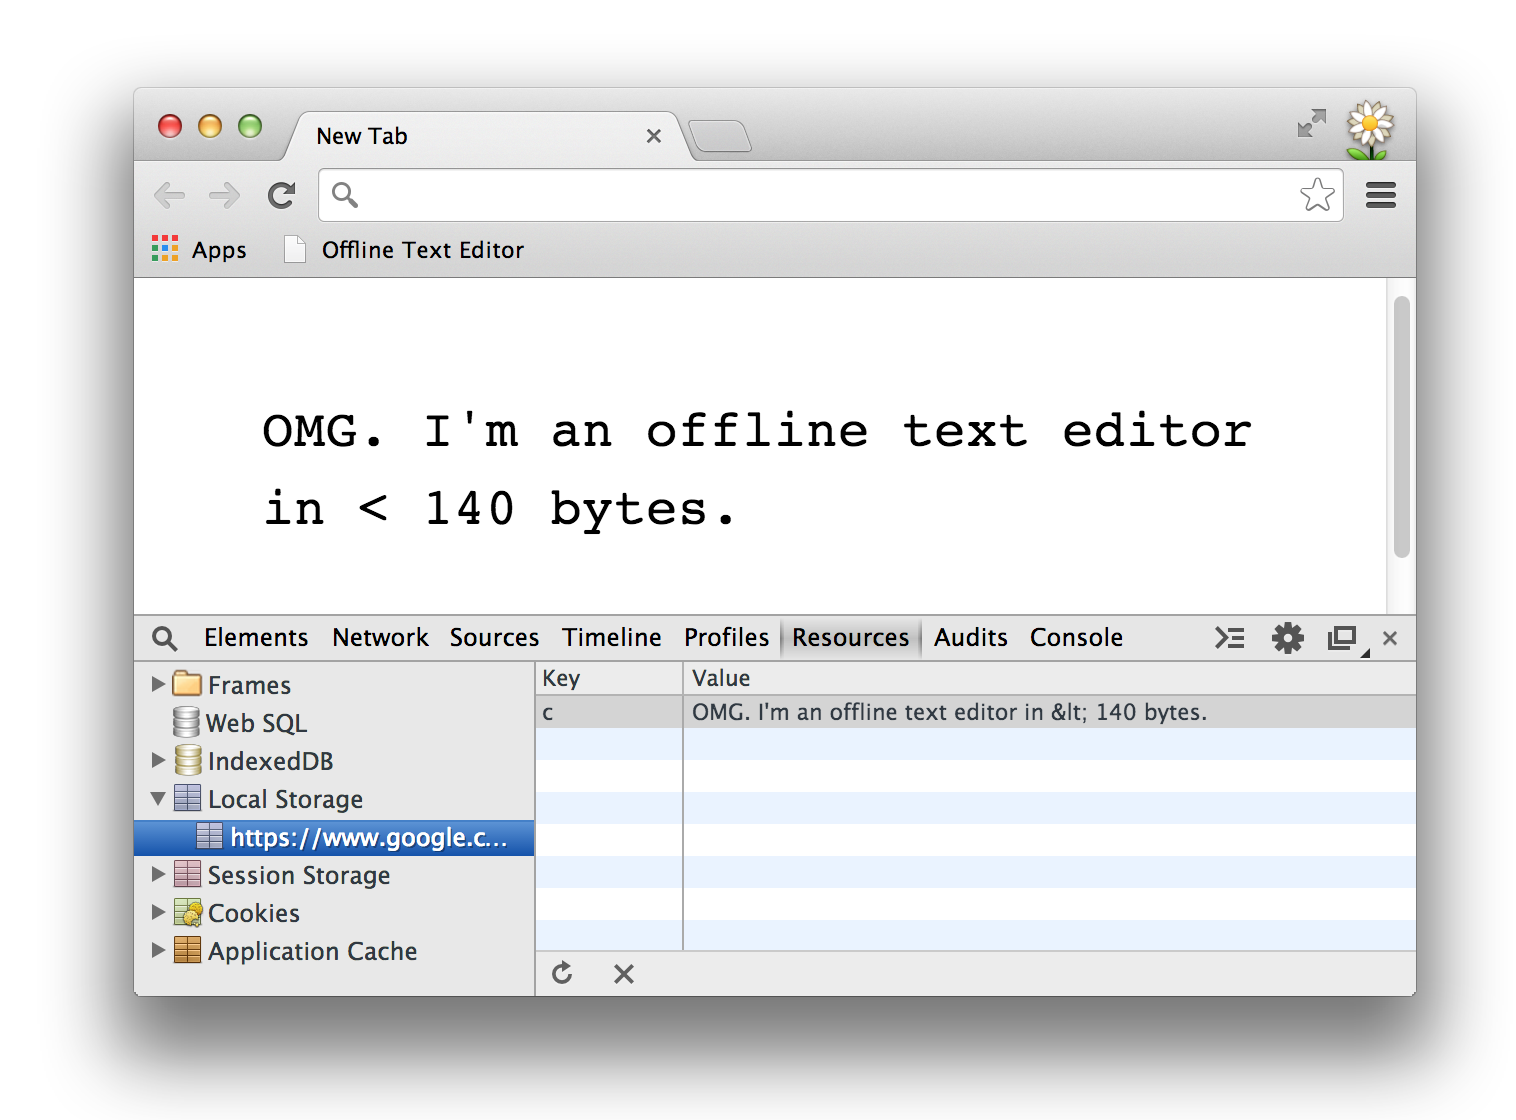 Offline Text Editor in < 140 bytes (115 bytes)  Powered by